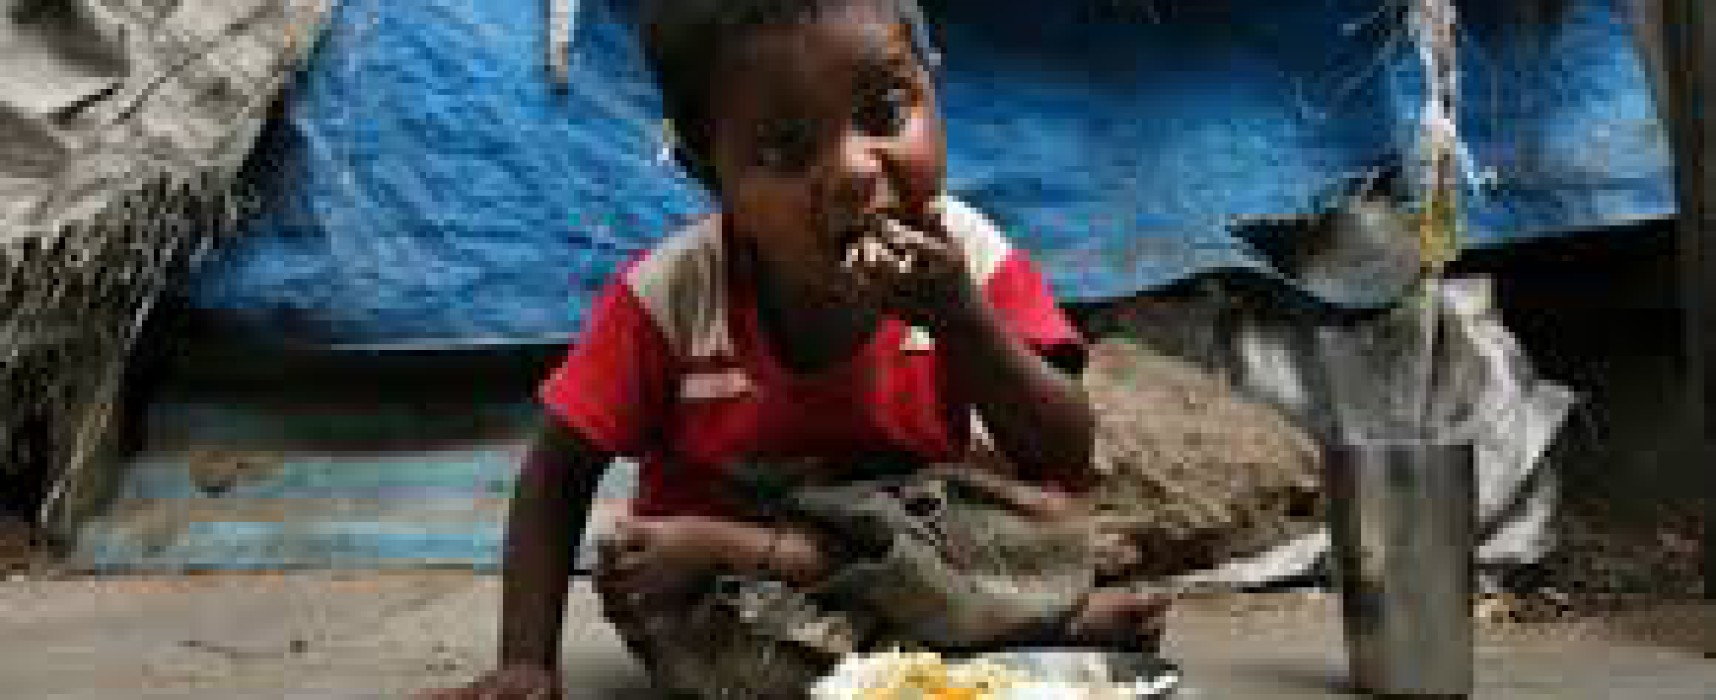 Malnutrition in India